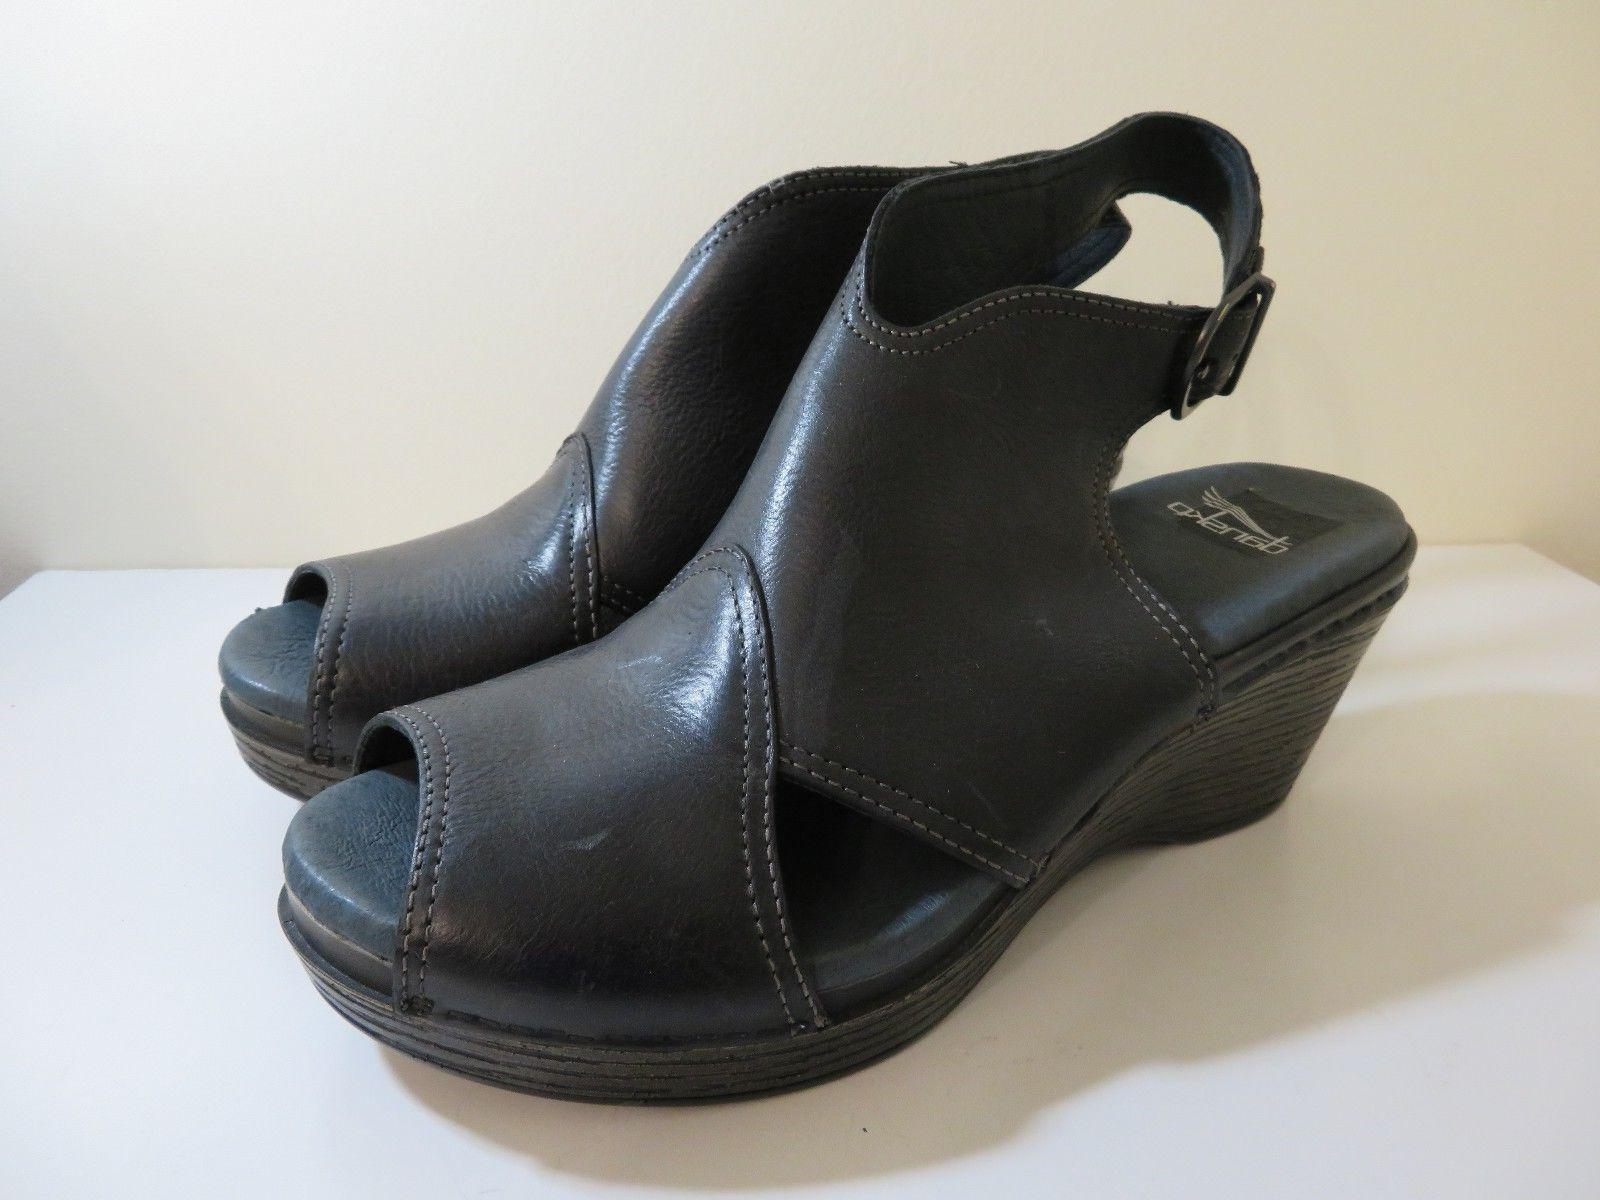 leather wedge sandals shoes vanda black new